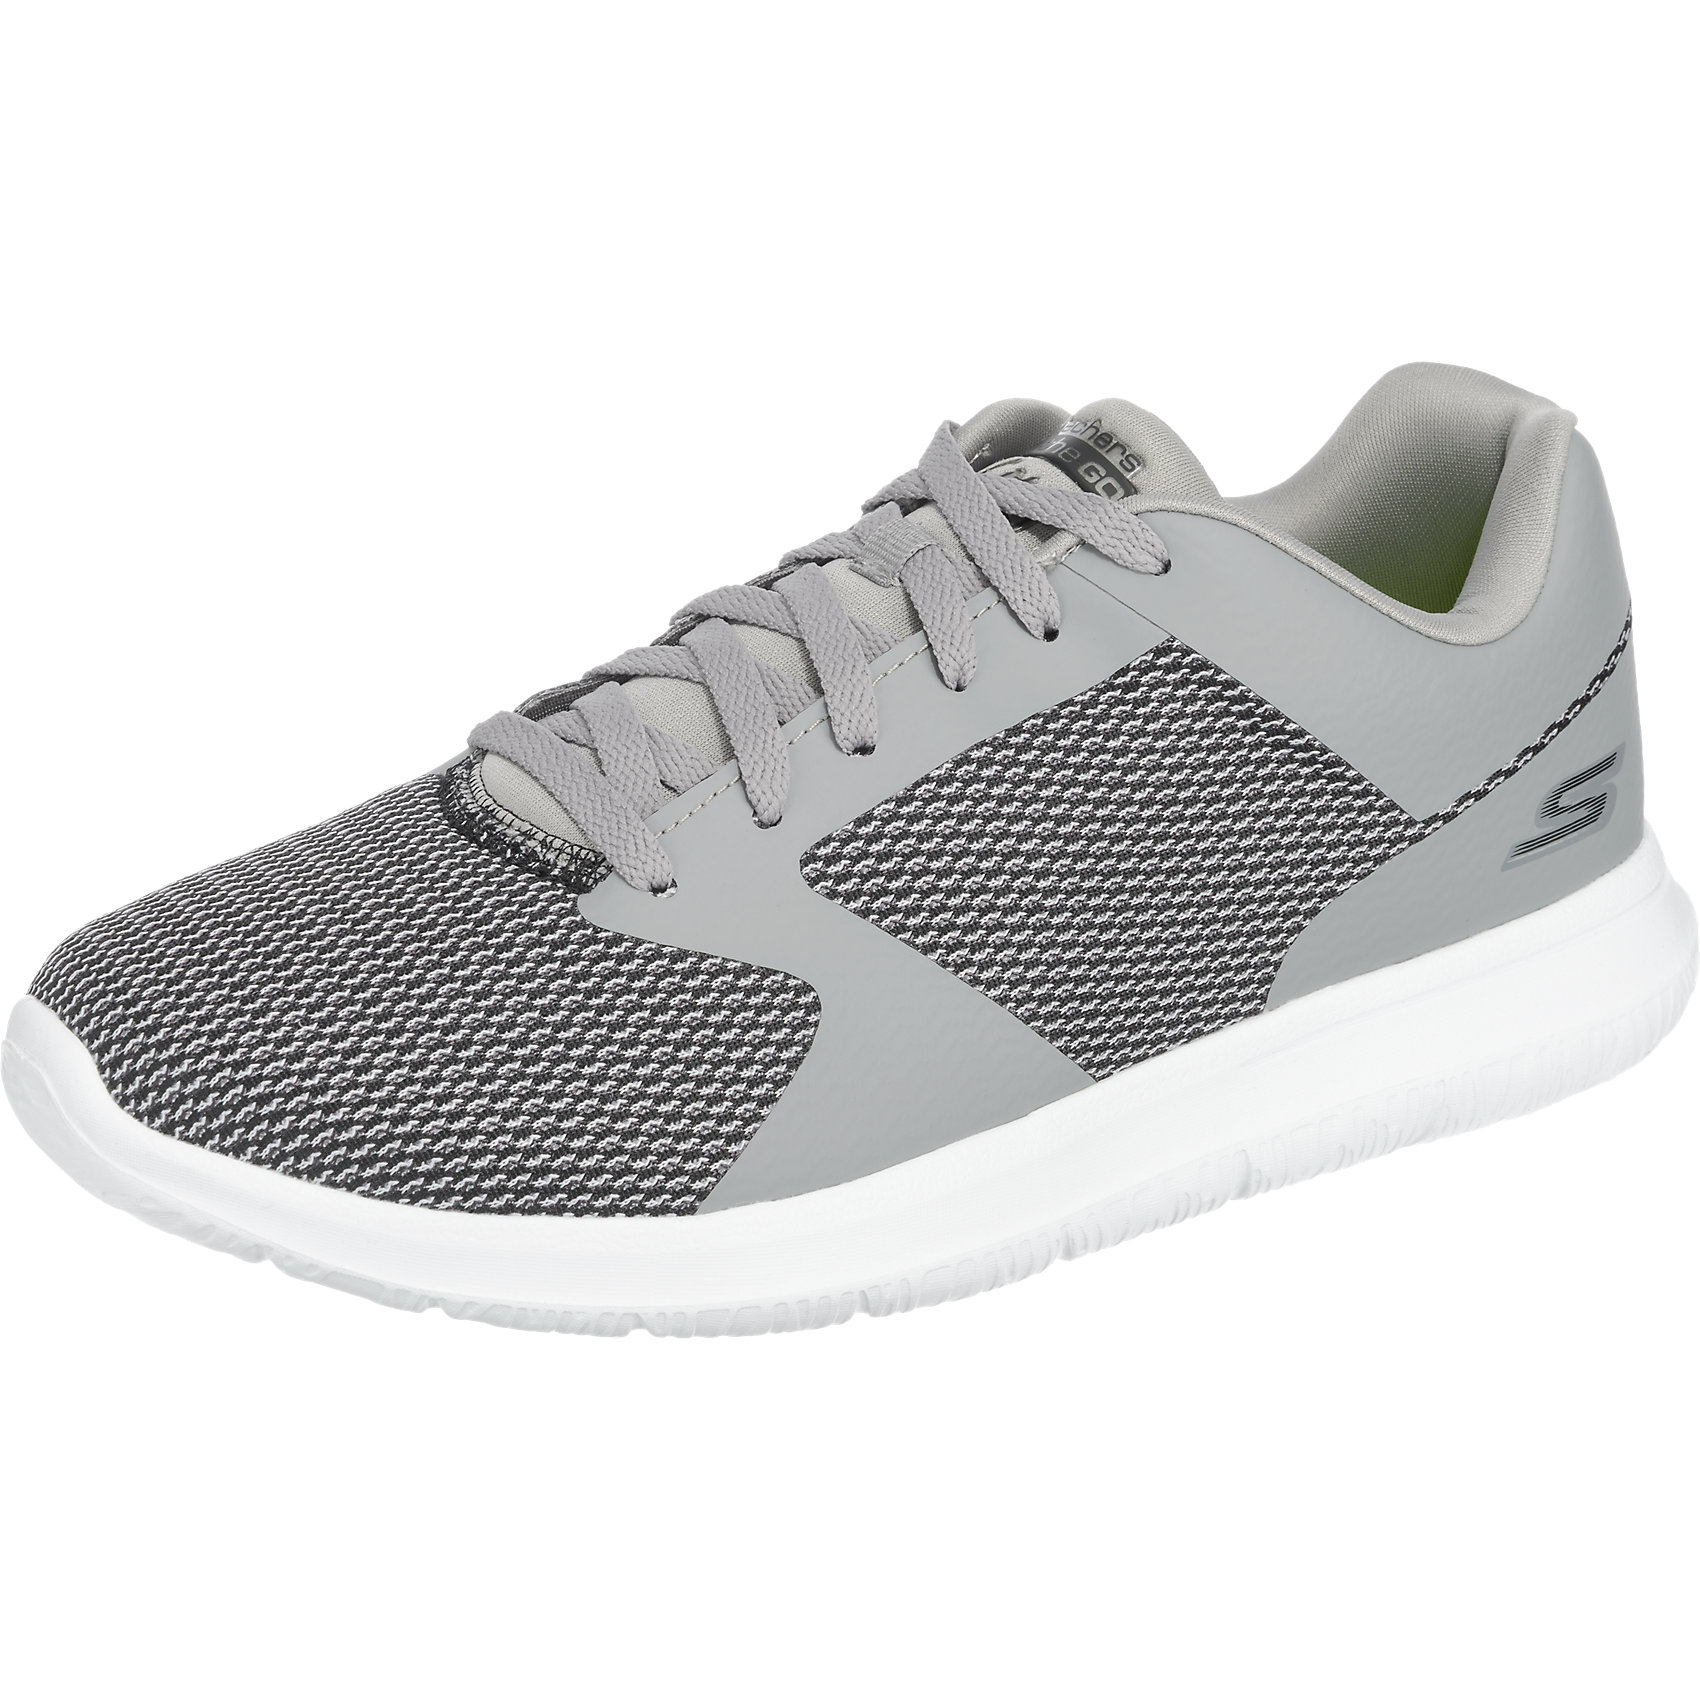 Neu SKECHERS The 6891429 On The SKECHERS Go City Sneakers grau 6891429 SKECHERS ... ee2e24